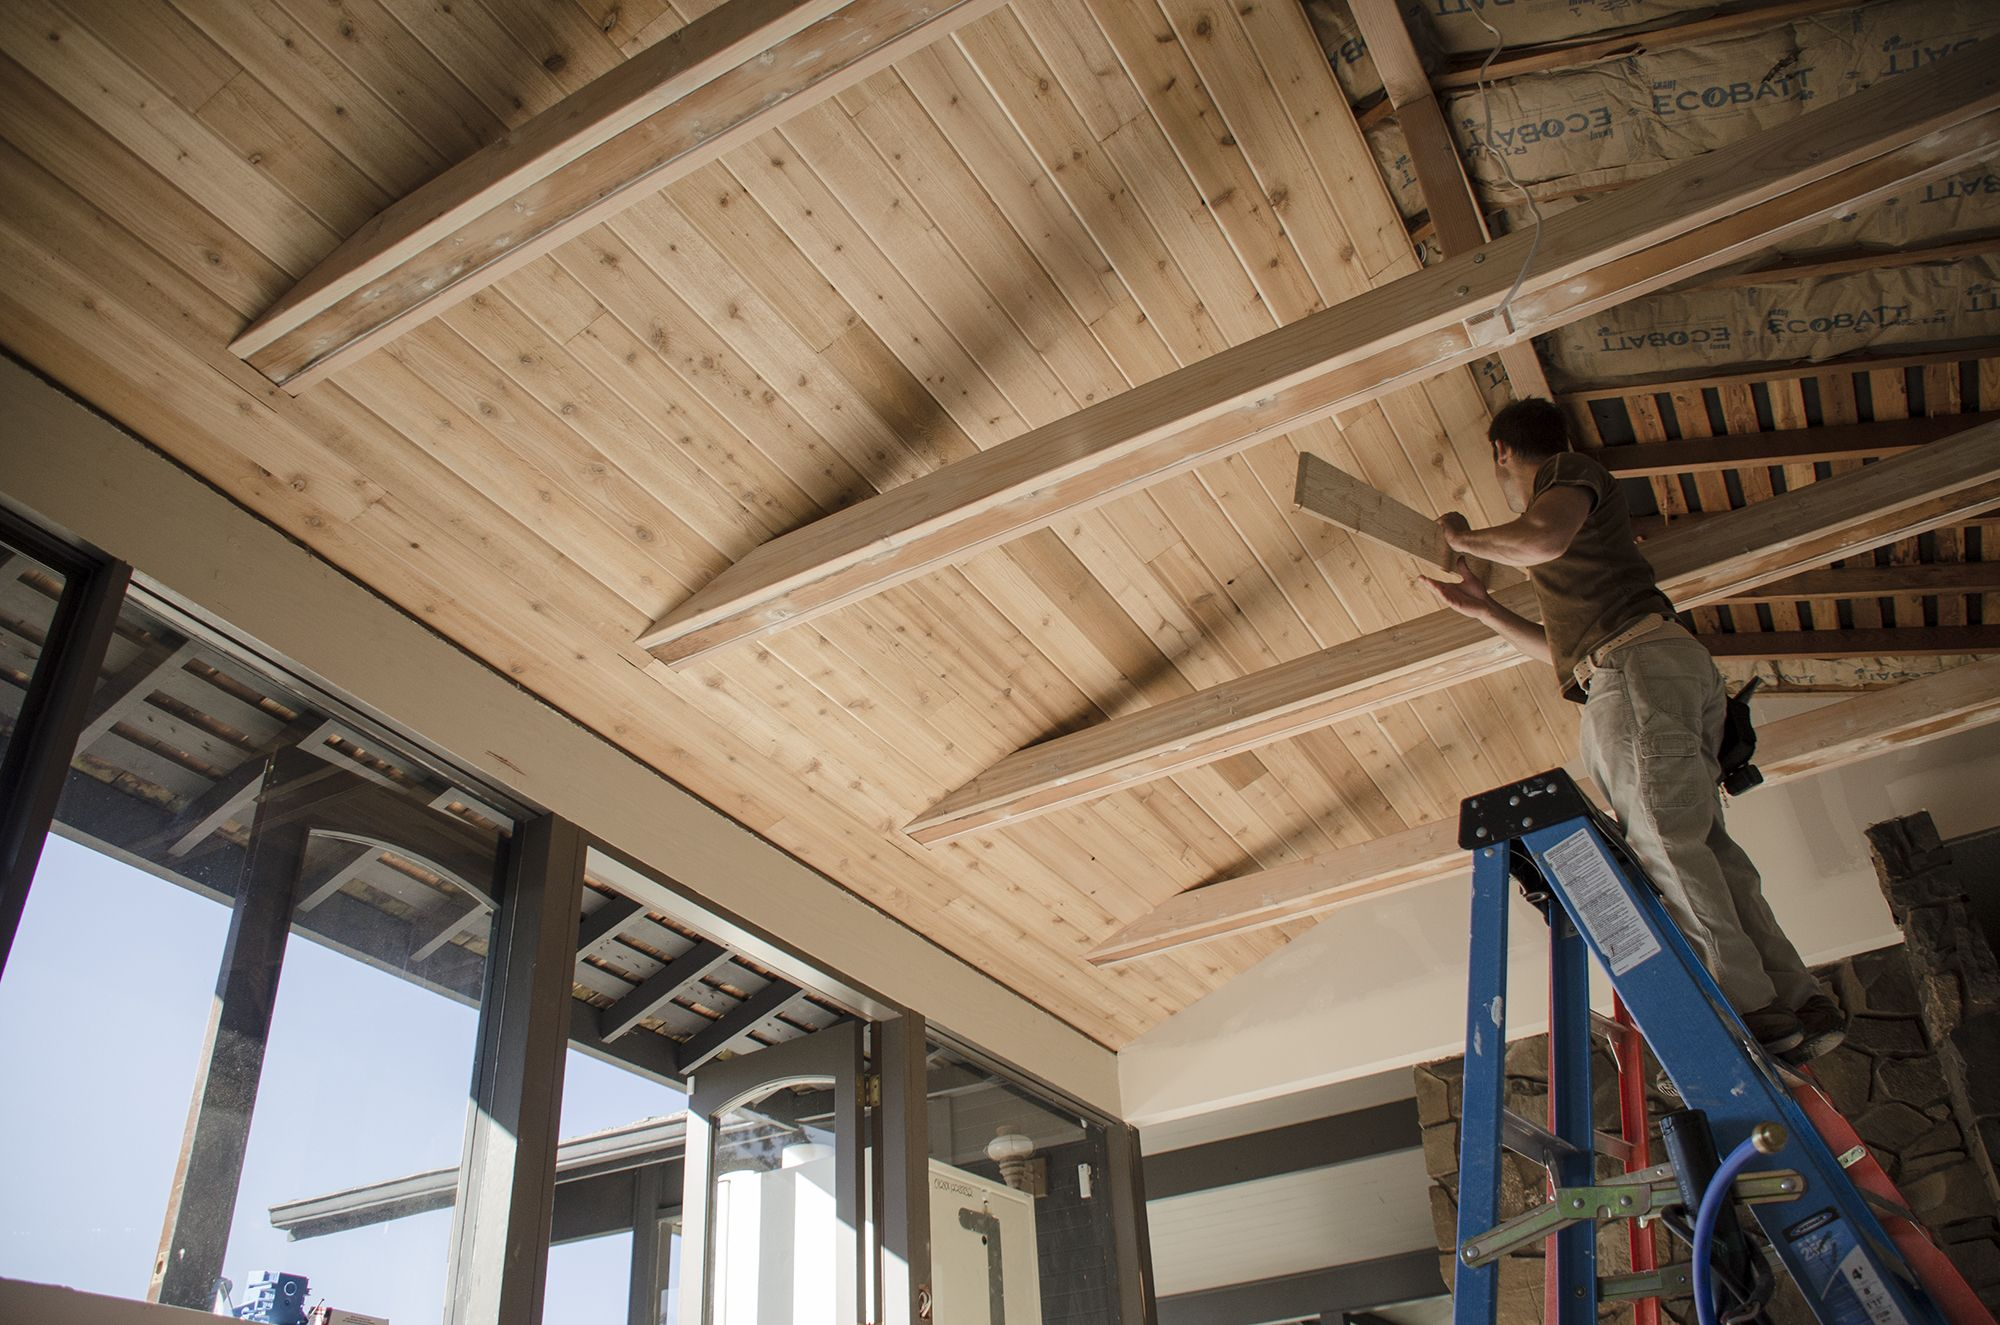 With The Tongue And Groove Cedar The Ceiling Really